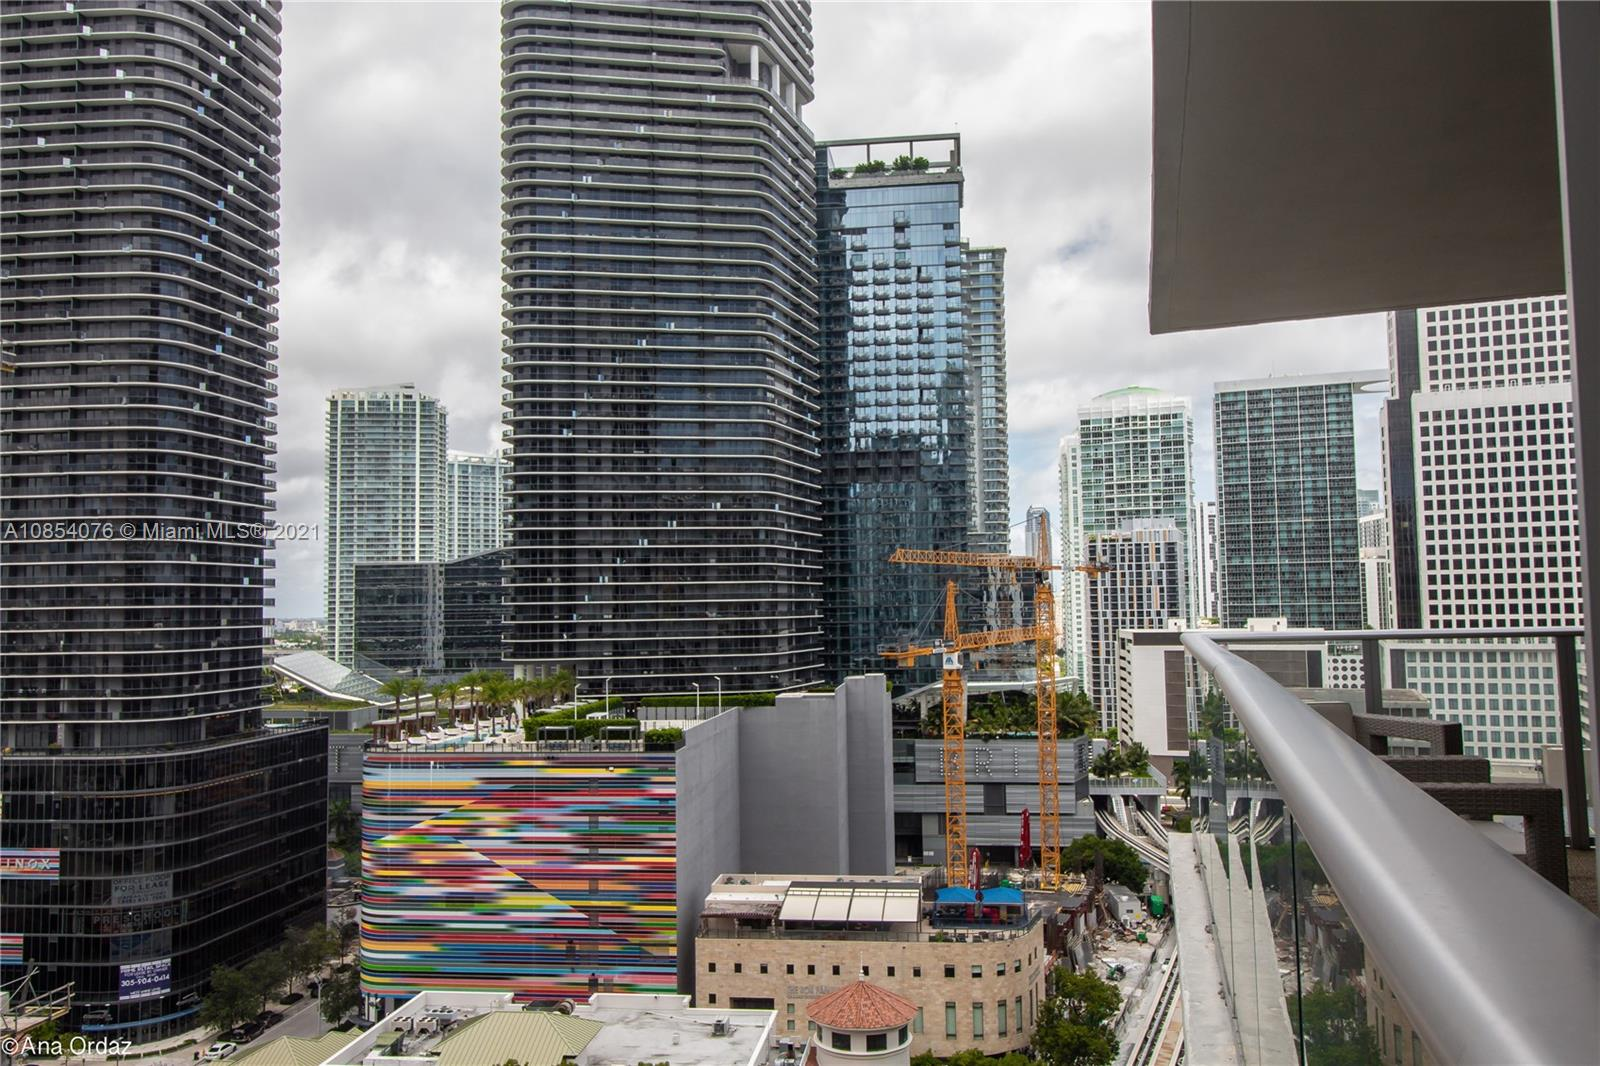 INVESTMENT ONLY*FACETIME *RENTED UNTIL 2/22 MAGNIFICENT  STUDIO IN THE HEART OF BRICKELL FEATURING 1 BED 1 BATH WITH SENSATIONAL VIEWS! CONDO OFFERS STATE OF THE ART  AMENITIES SUCH AS FITNESS CENTER, SPA, POOL, EXCLUSIVE LOCATION IN DOWNTOWN BRICKELL, WORK, DINE SHOP, AND PLAY YES!! READY FOR PREVIEW AND OR VIRTUAL TOUR ... BEST PRICE IN THE BUILDING. 1 TO 2 WEEKS FAST APPROVAL VALET PARKING ONLY  BEST AMENITIES IN TOWN BIKE/JOG PATH, BILLARD ROOM, PICNIC AREA, BUSINESS CENTER, CLUBHOUSE, EXERCISE ROOM, HANDBALL/BASKETBALL COURT, HEATED POOL, JACUZZI, SAUNA, MASSAGE TABLE, CHILDREN ROOM AND MUCH MORE! $500 Nonrefundable deposit for moving in out